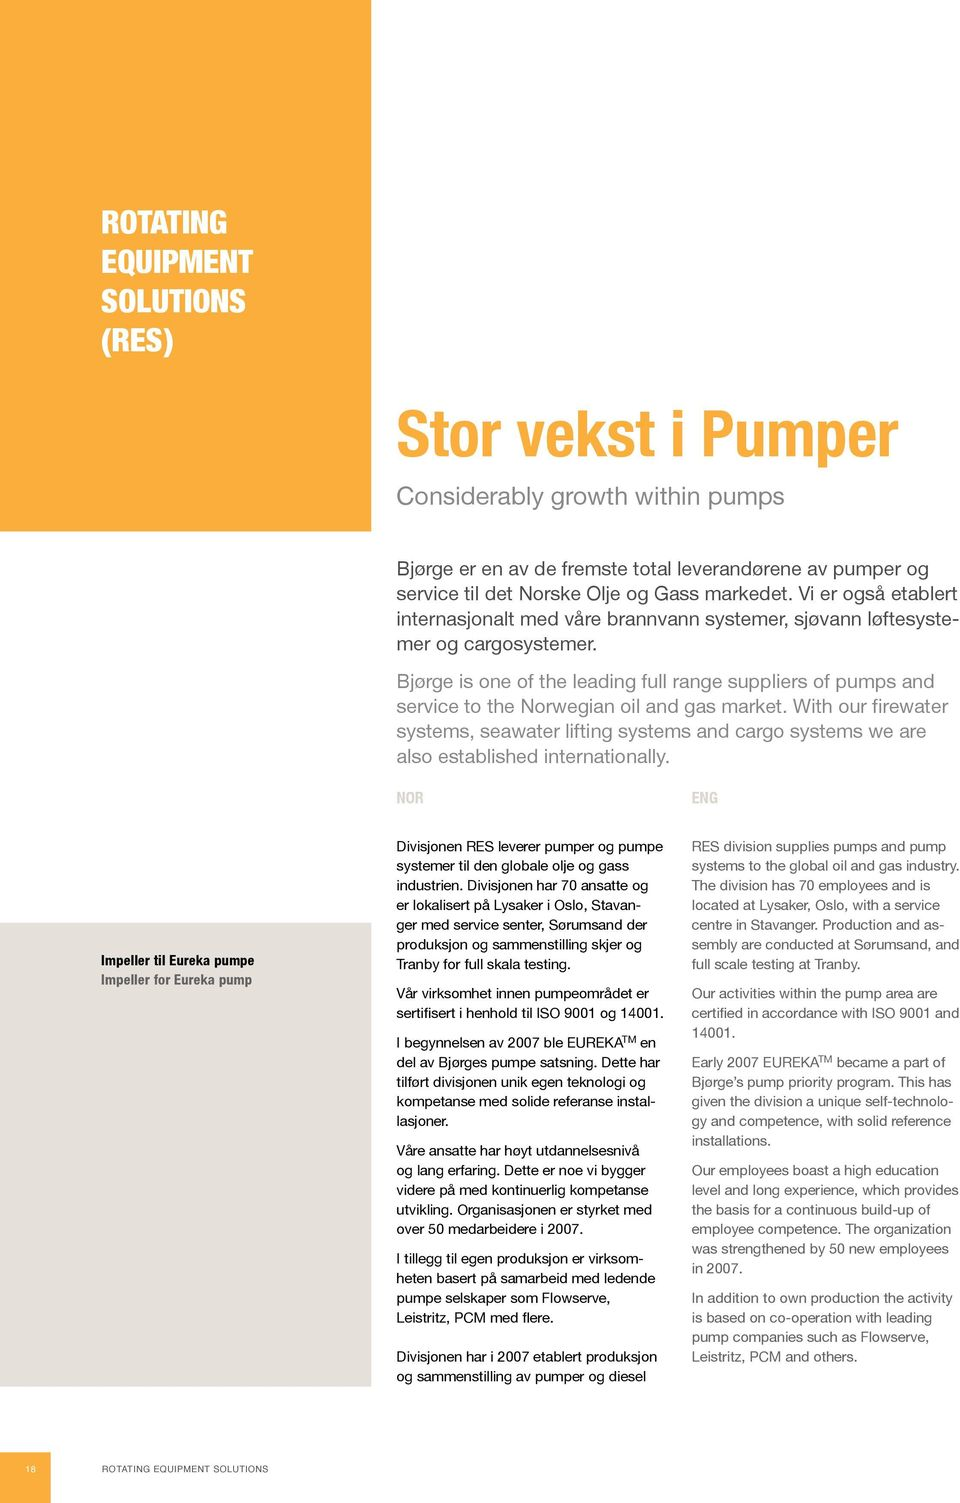 Bjørge is one of the leading full range suppliers of pumps and service to the Norwegian oil and gas market.